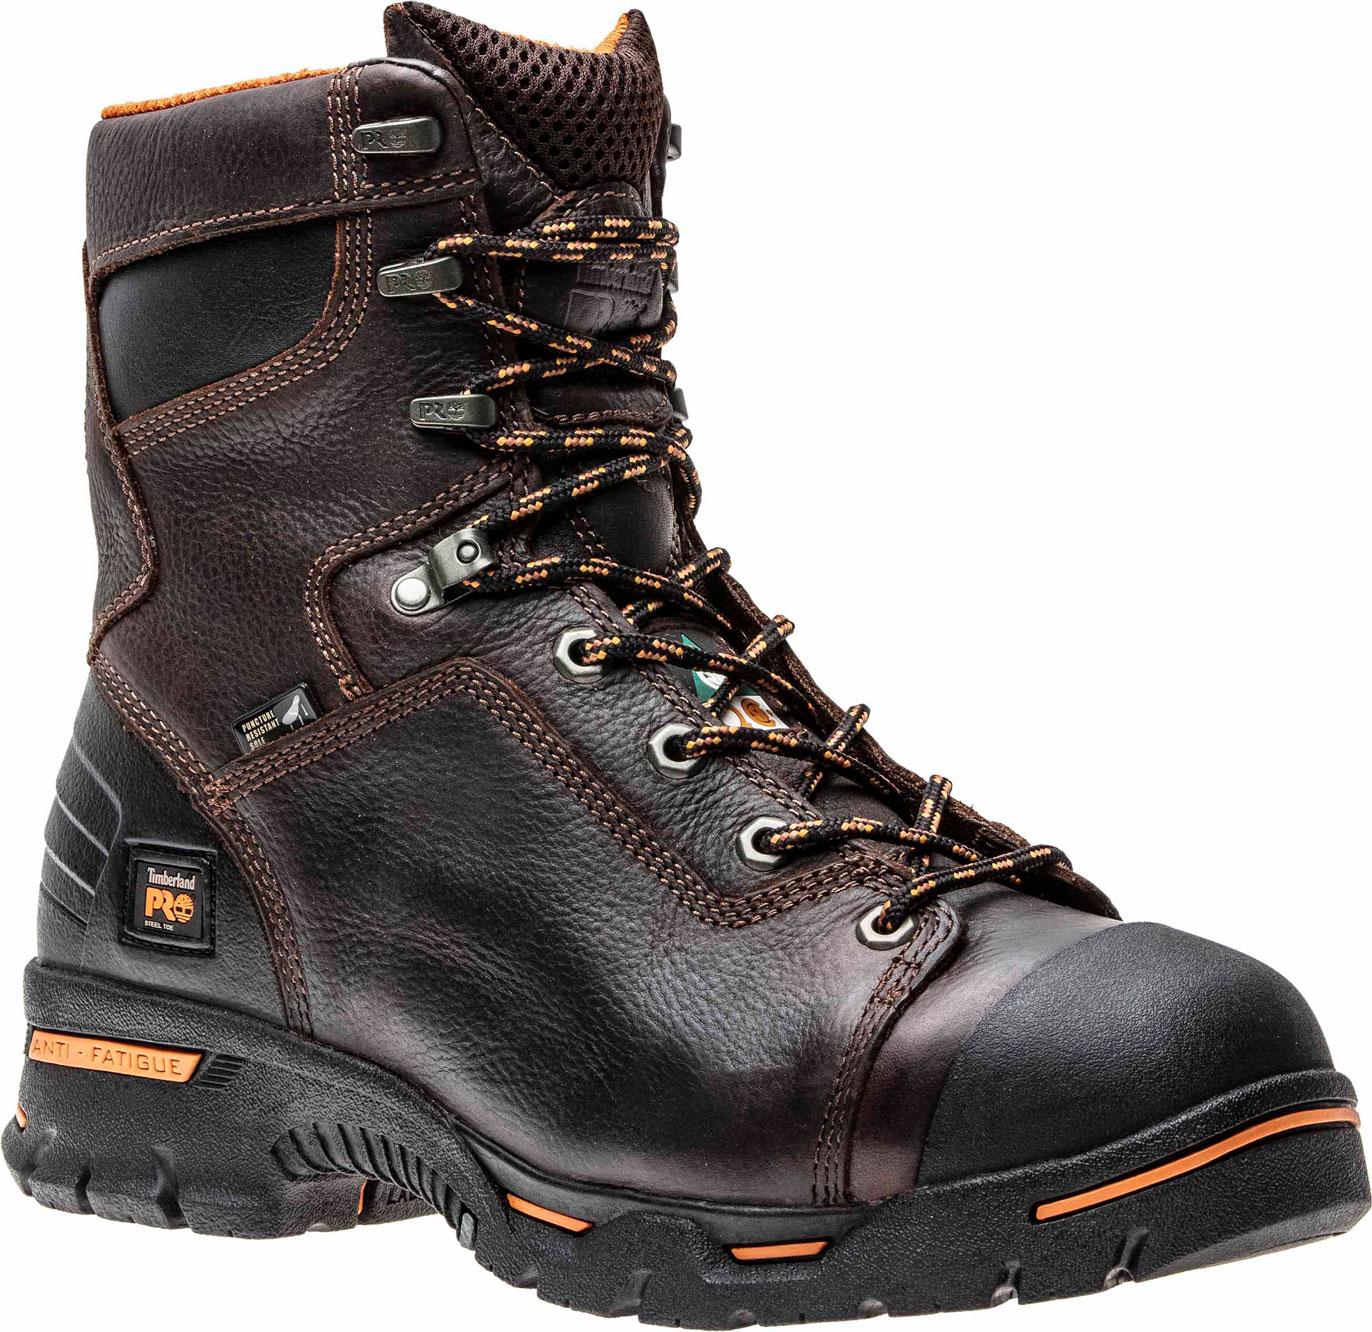 Cinco caricia Burlas  Safgard :: Work Boots, Safety Shoes, Steel Toe, Waterproof, Safety  Footwear, Bates, Boots, ANSI & ASTM